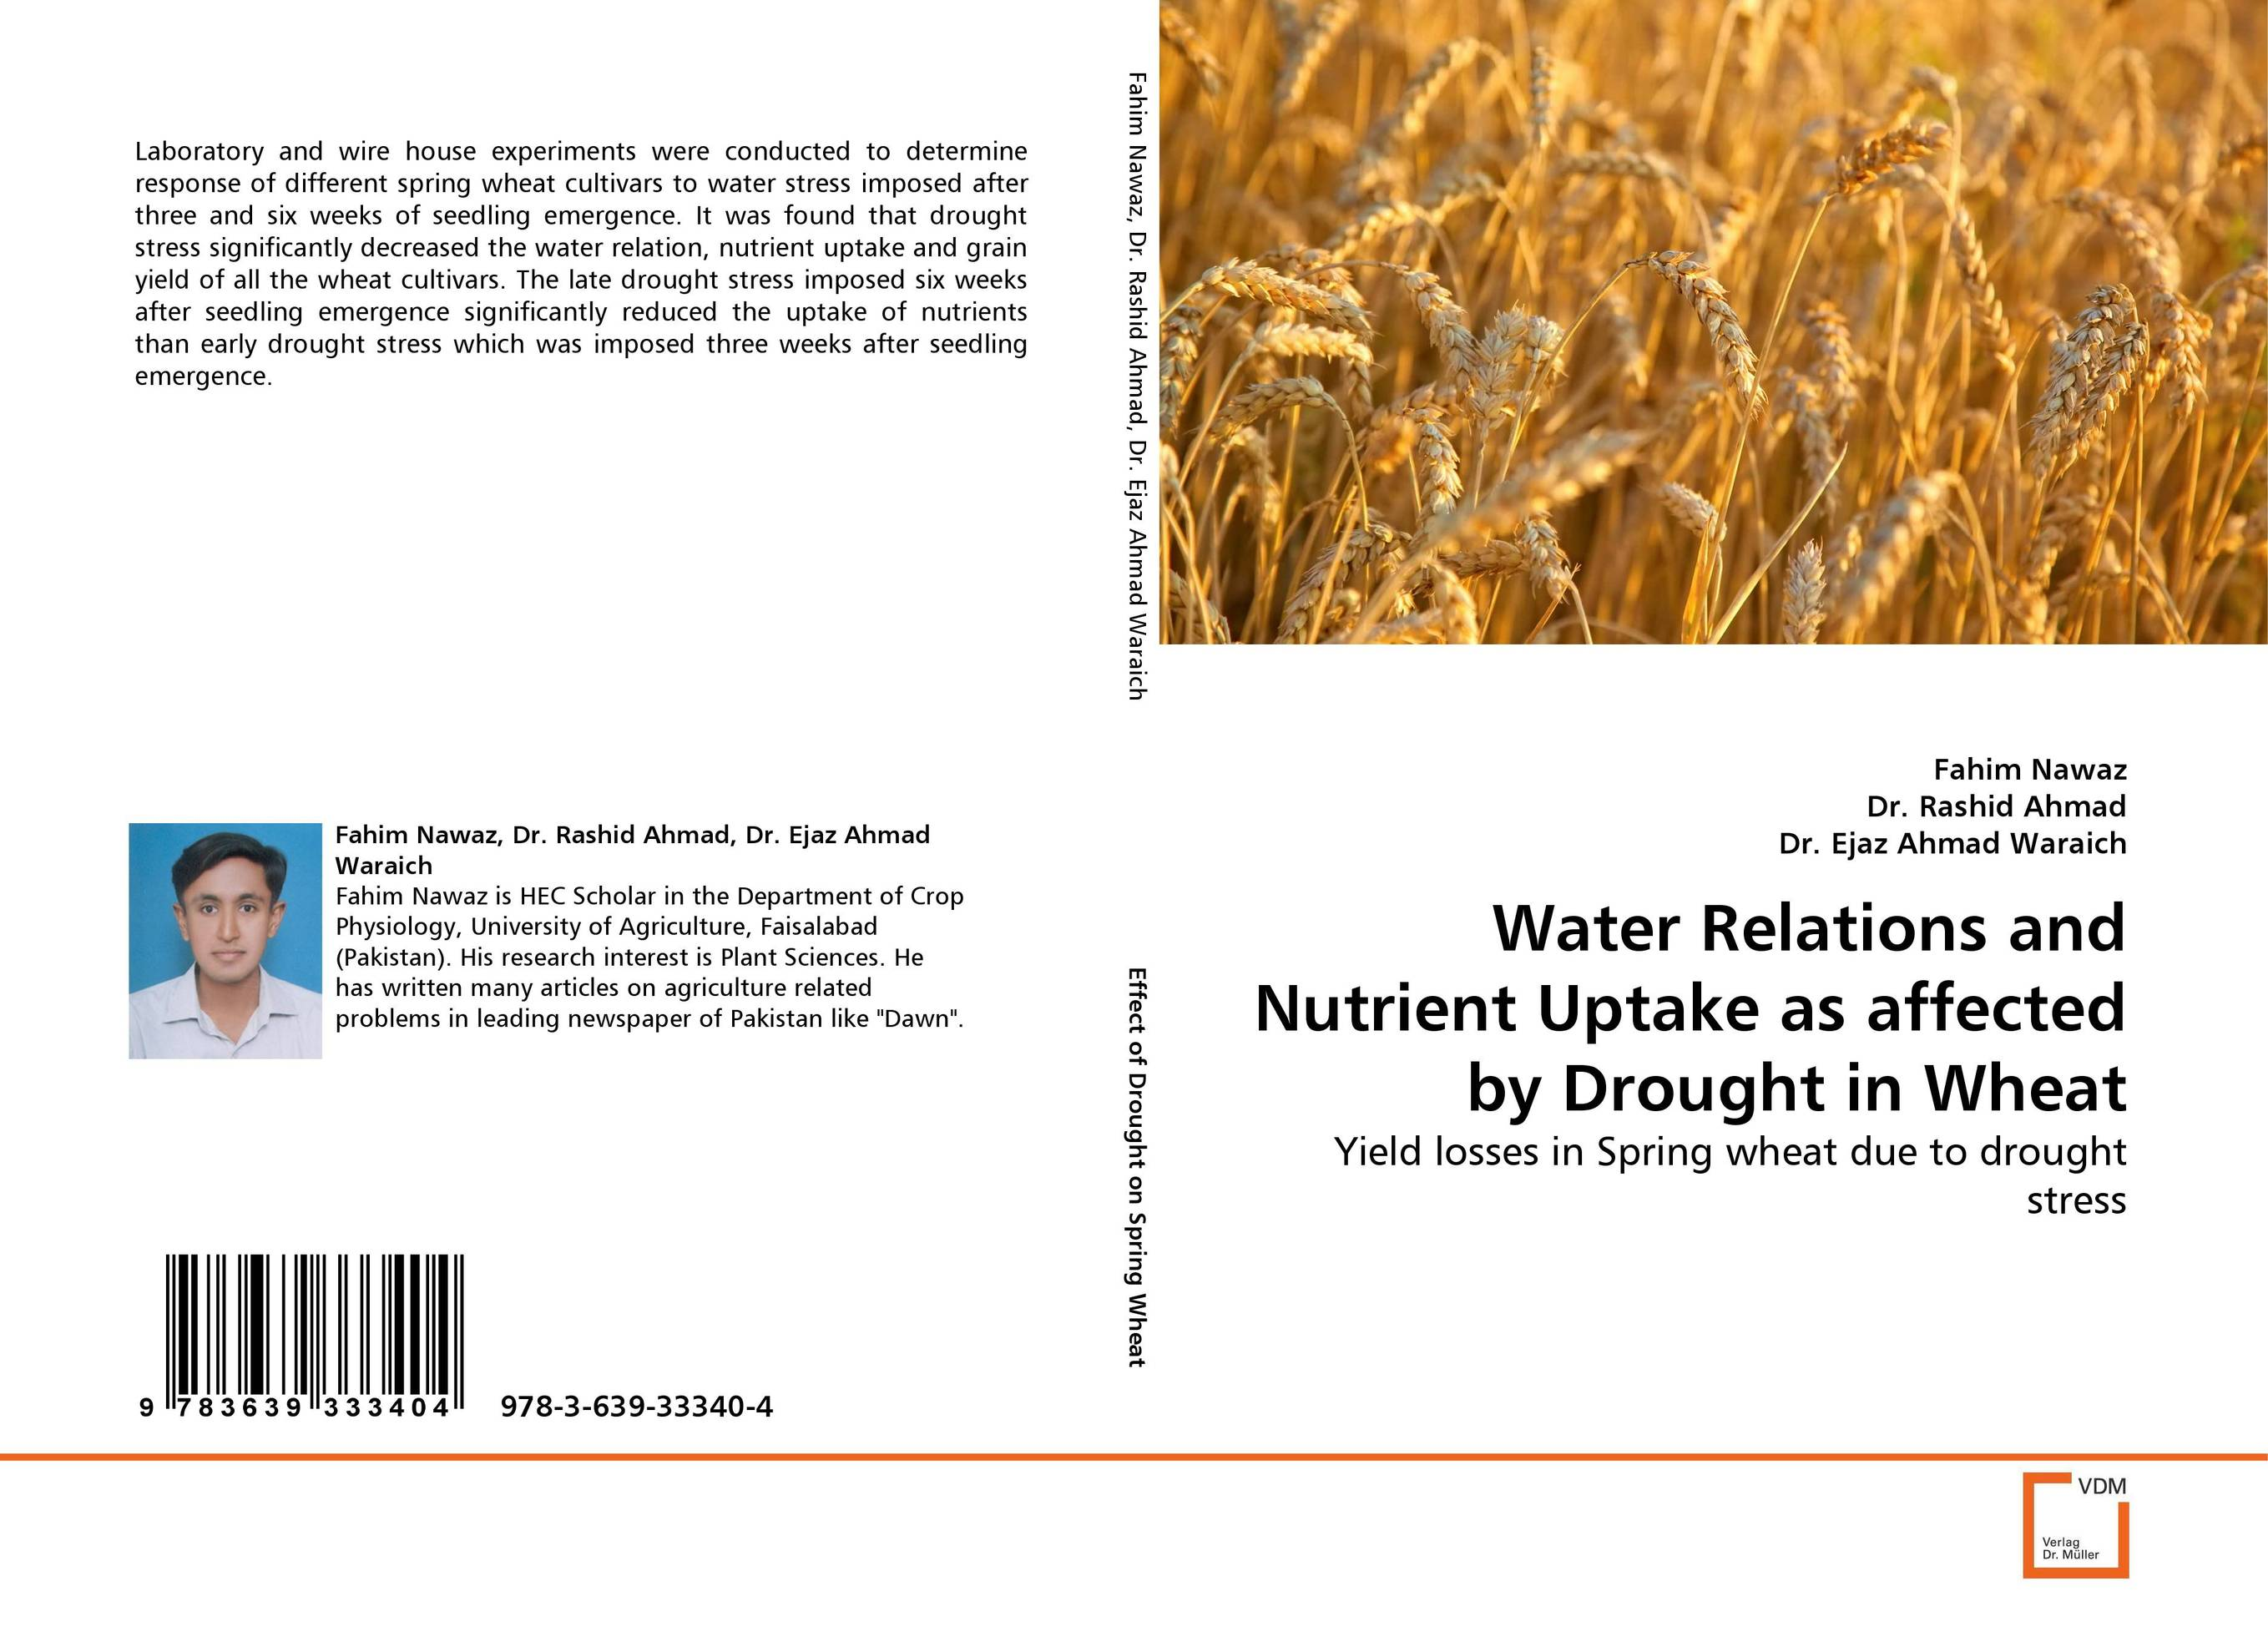 Water Relations and Nutrient Uptake as affected by Drought in Wheat